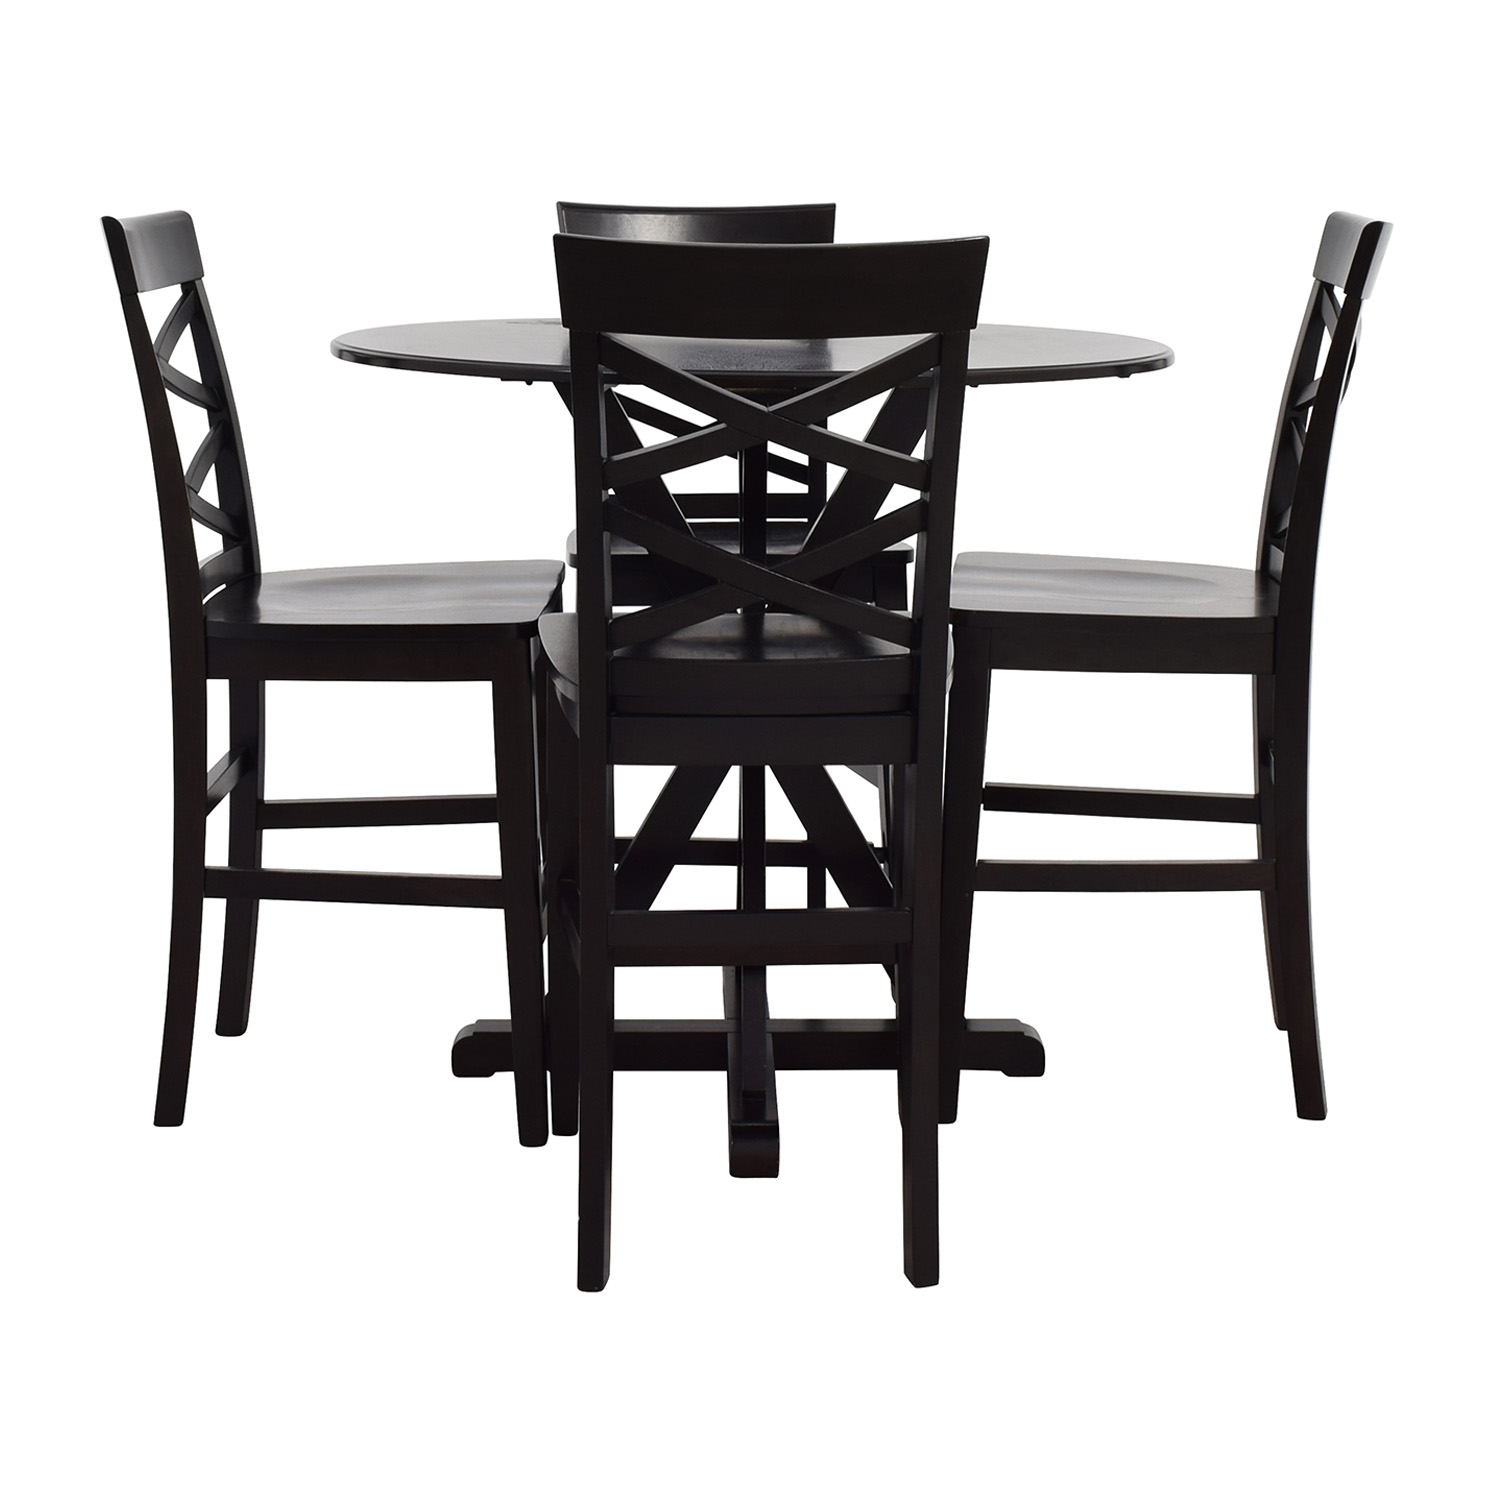 100 Ashley Furniture Black Dining Table Dining  : ashley furniture bar height dining set from 45.77.108.62 size 1500 x 1500 jpeg 222kB